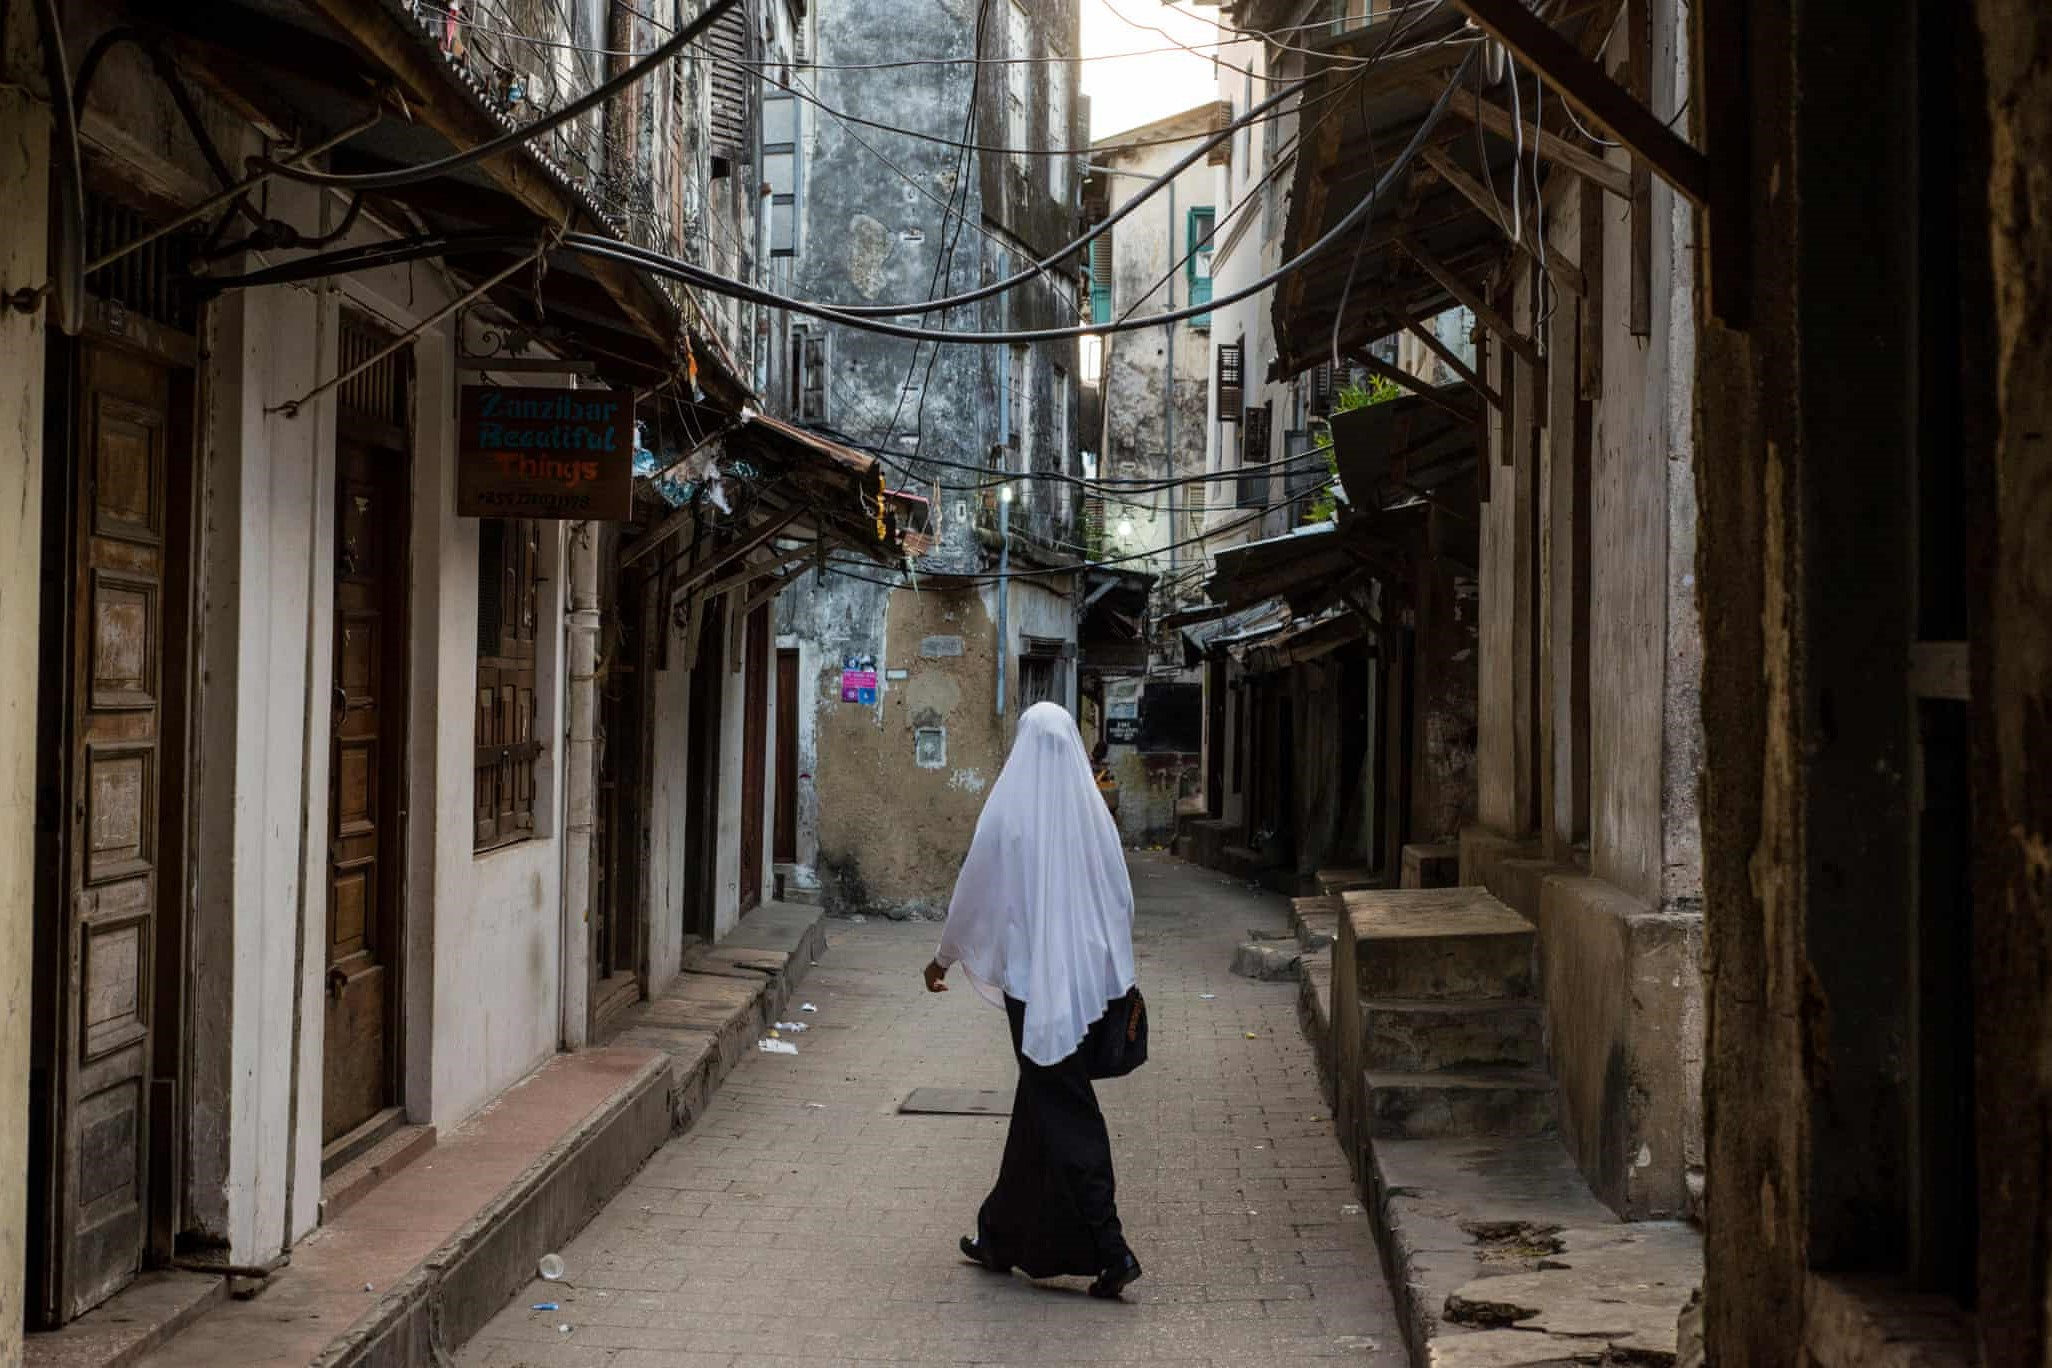 Tourism Pushed Women Out of Zanzibar's Public Space, But Now They're Taking Them Back (The Guardian)   Women-only spaces on the 99% Muslim island have been usurped by economic growth. The Reclaim Women's Space project is trying to change that.